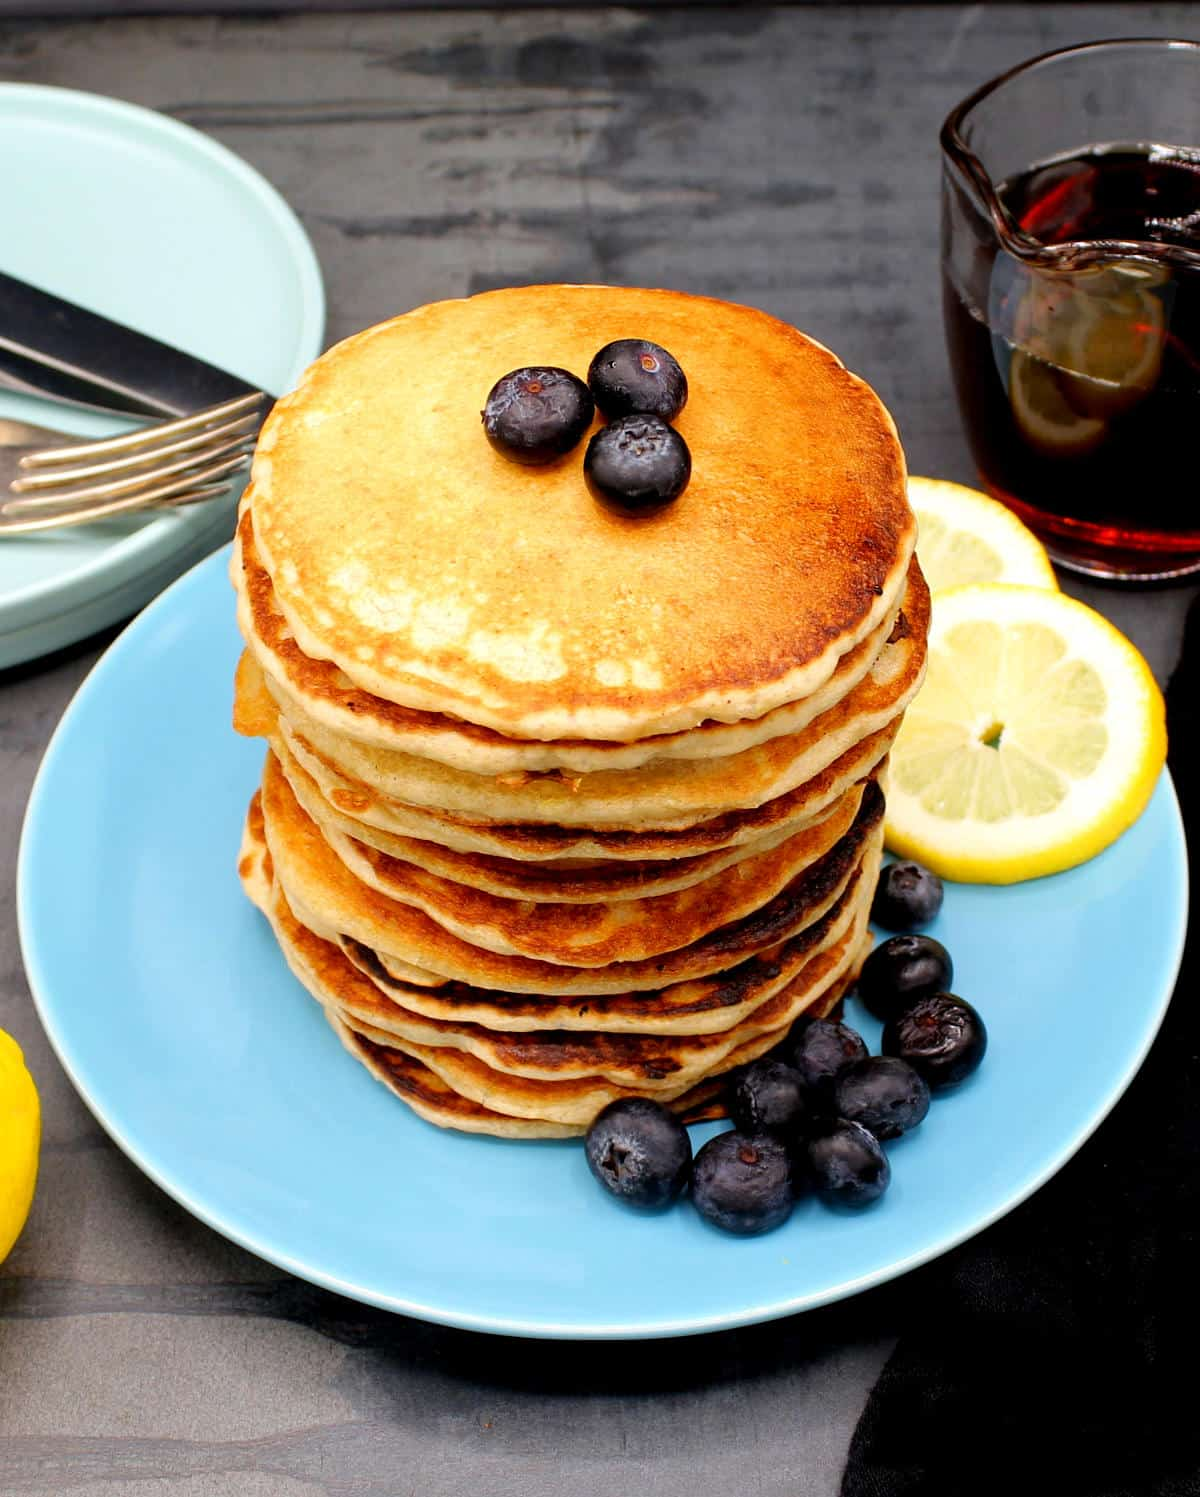 Front overhead photo of a stack of vegan lemon pancakes served on a blue plate with blueberries. On the side are lemon slices and maple syrup.